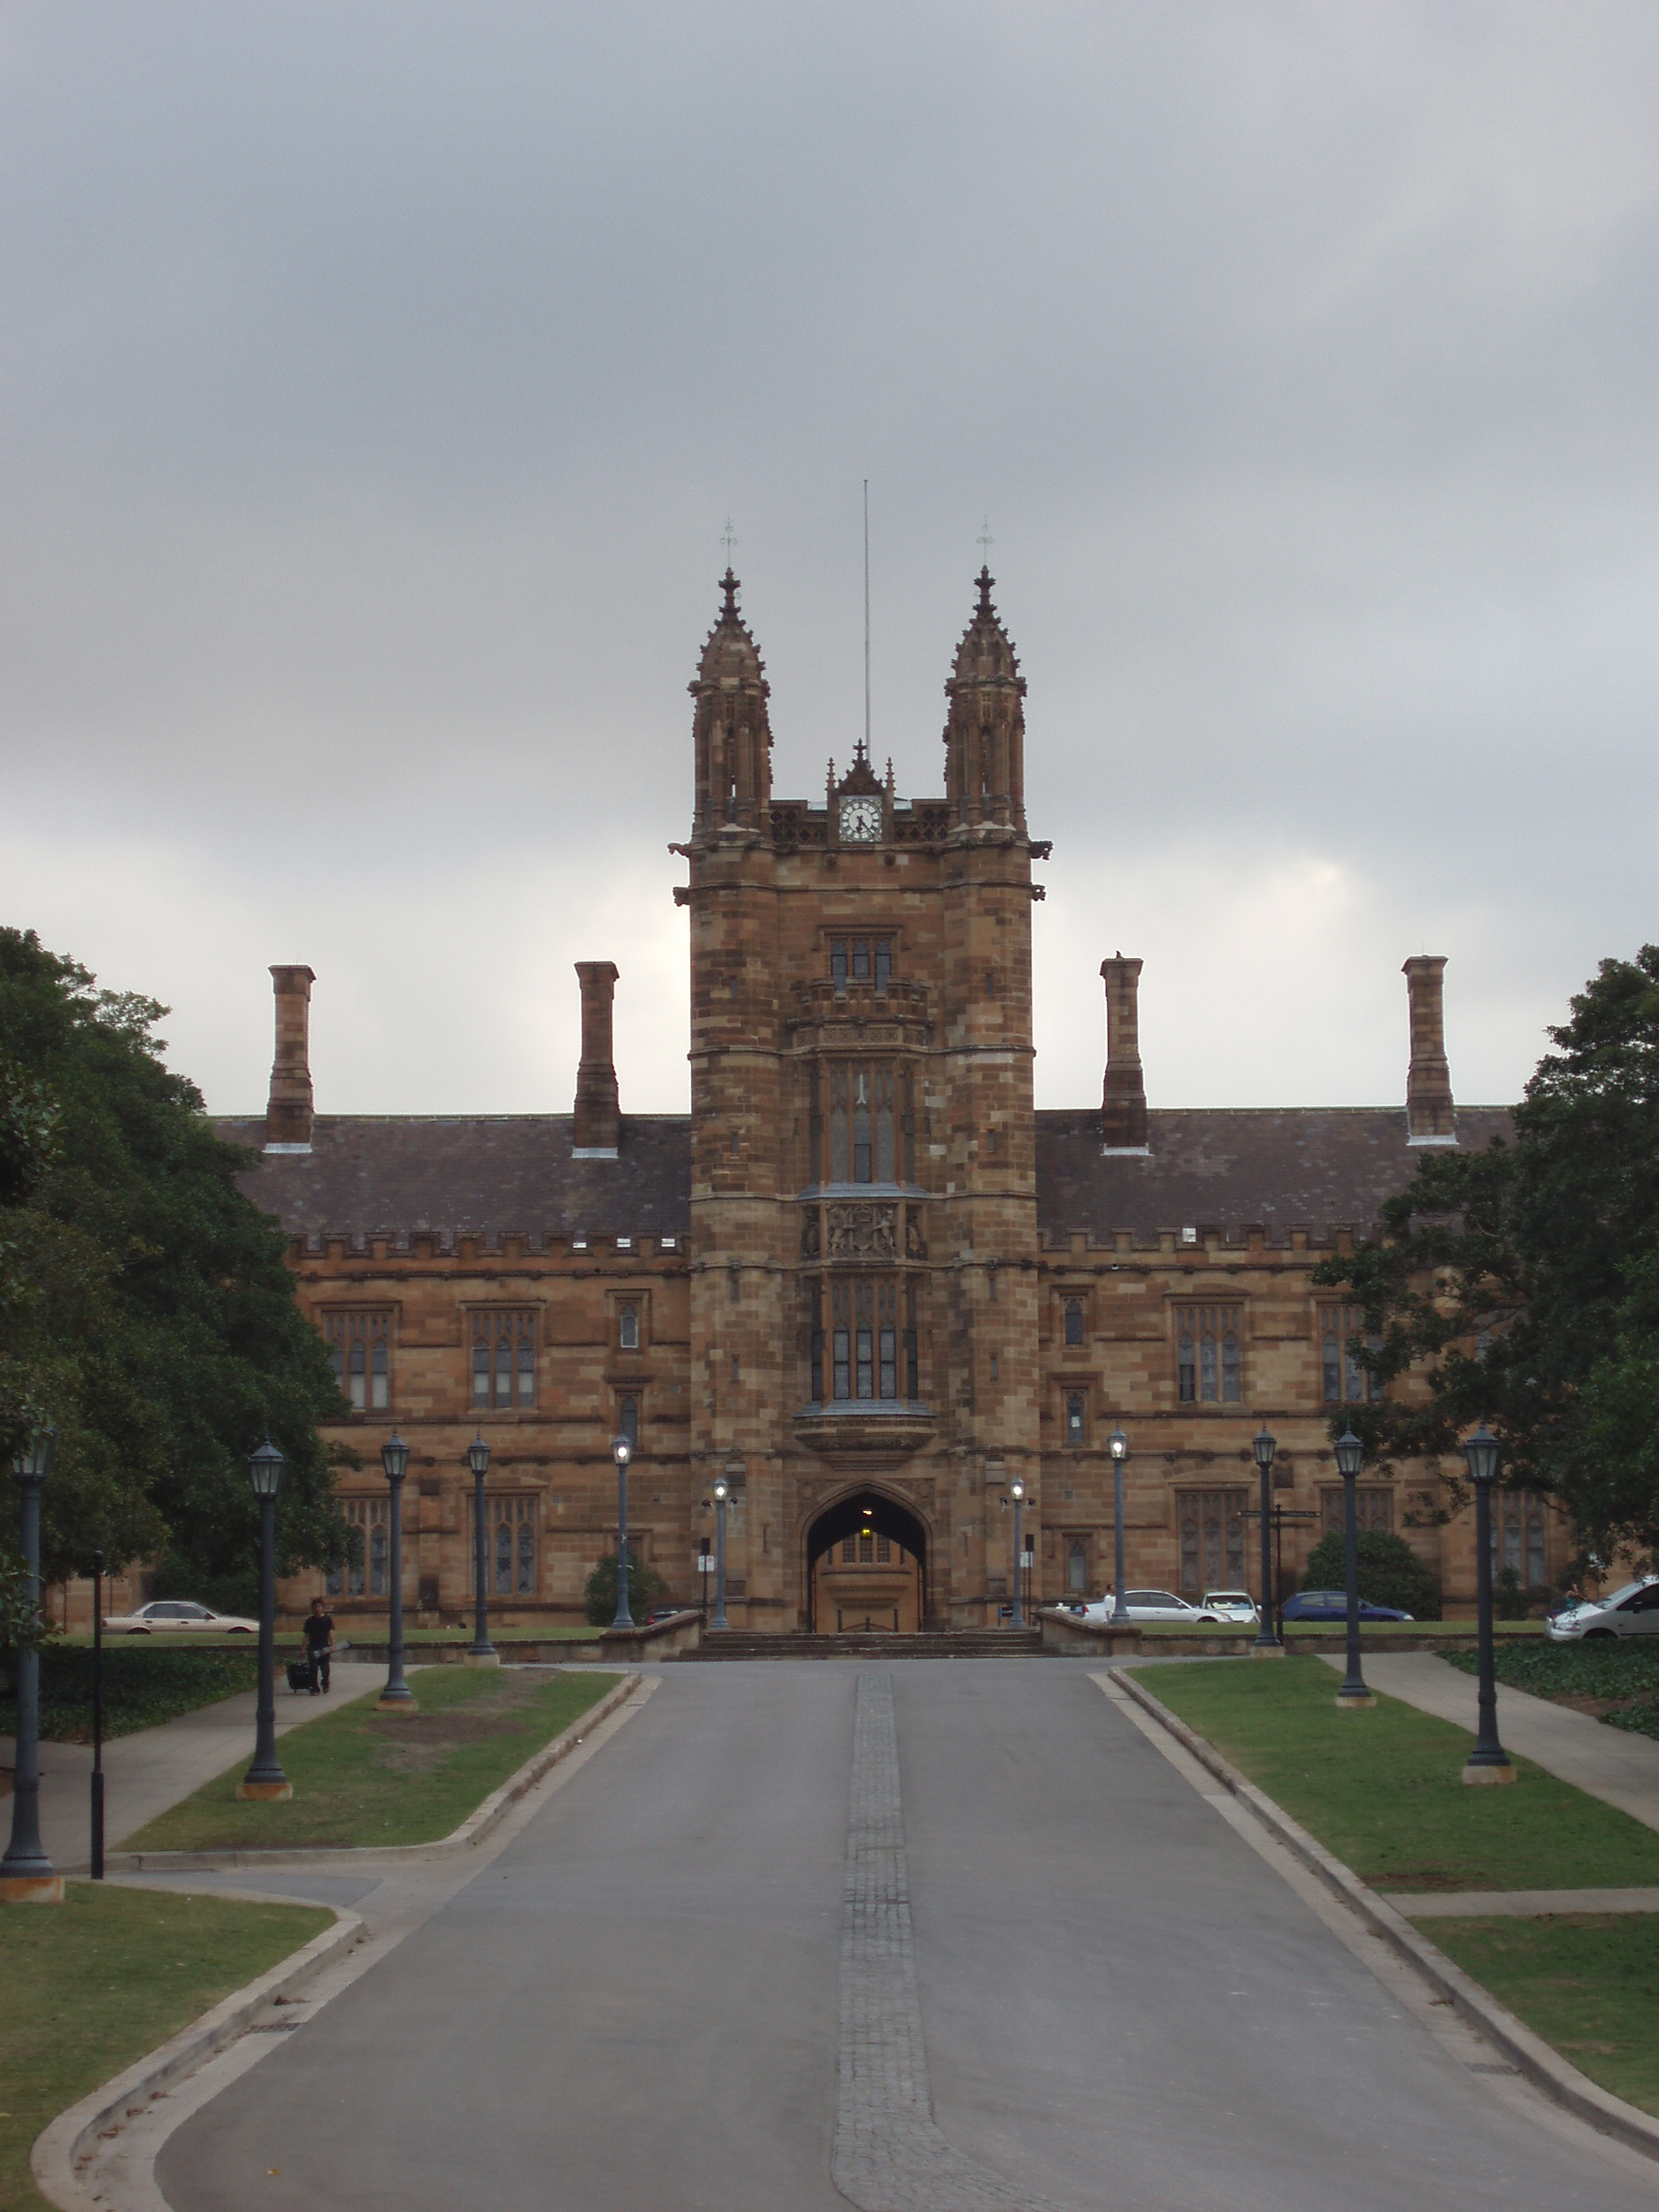 gothic revival buidings of the university of sydney